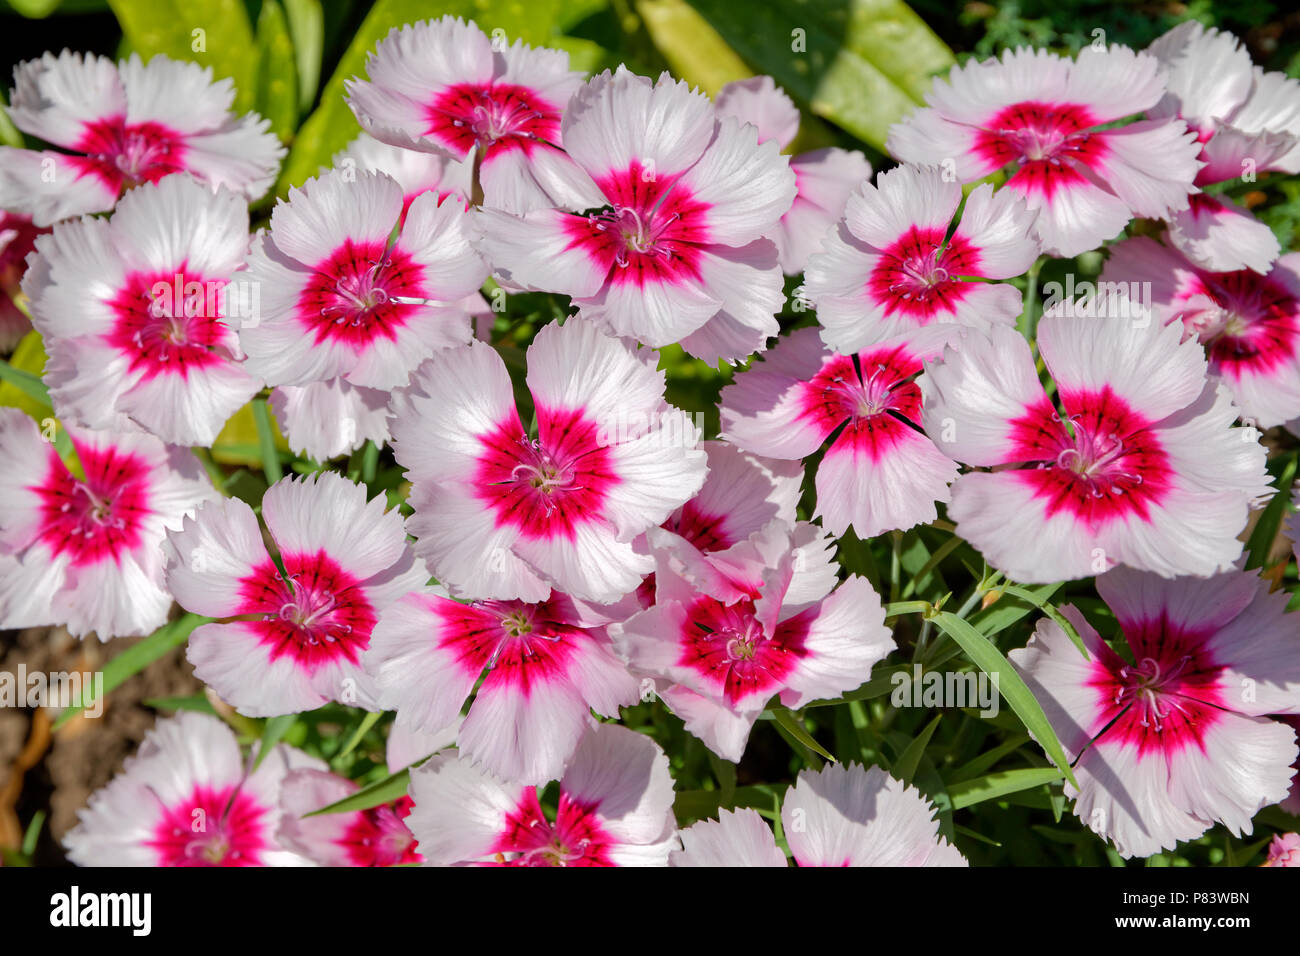 Pinks flower group in classification Dianthus. - Stock Image